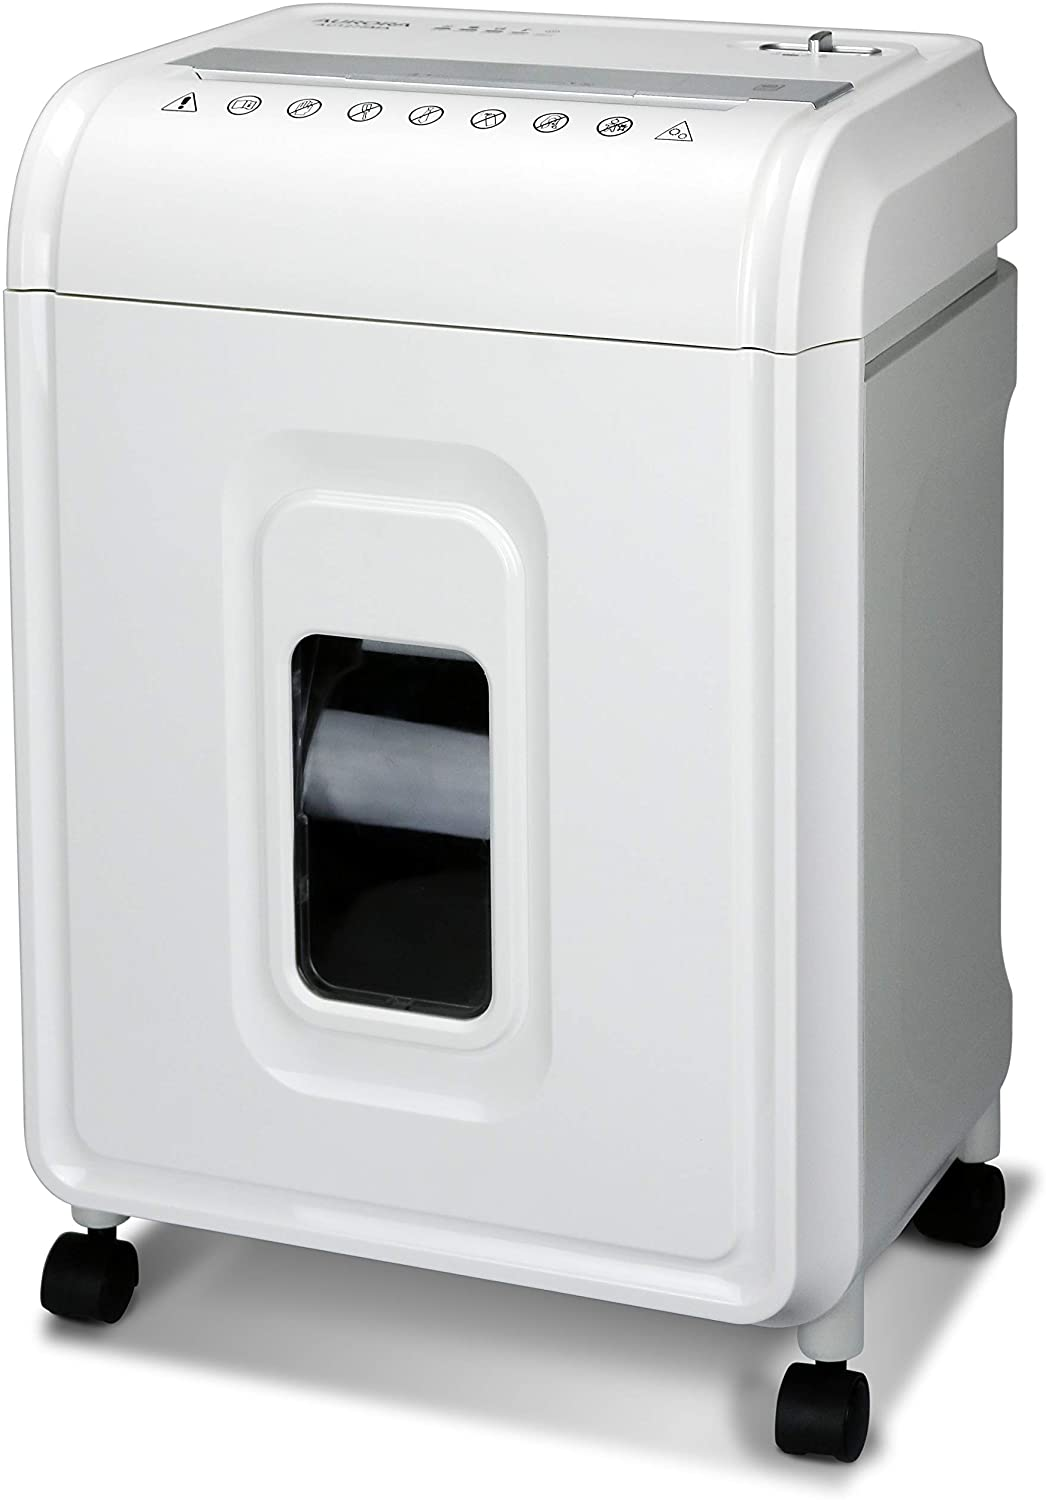 Aurora AU1275MA Professional Grade 12-Sheet Micro-Cut Paper and CD/Credit Card Shredder/ 60 Minutes Continuous Run Time, White/Gray